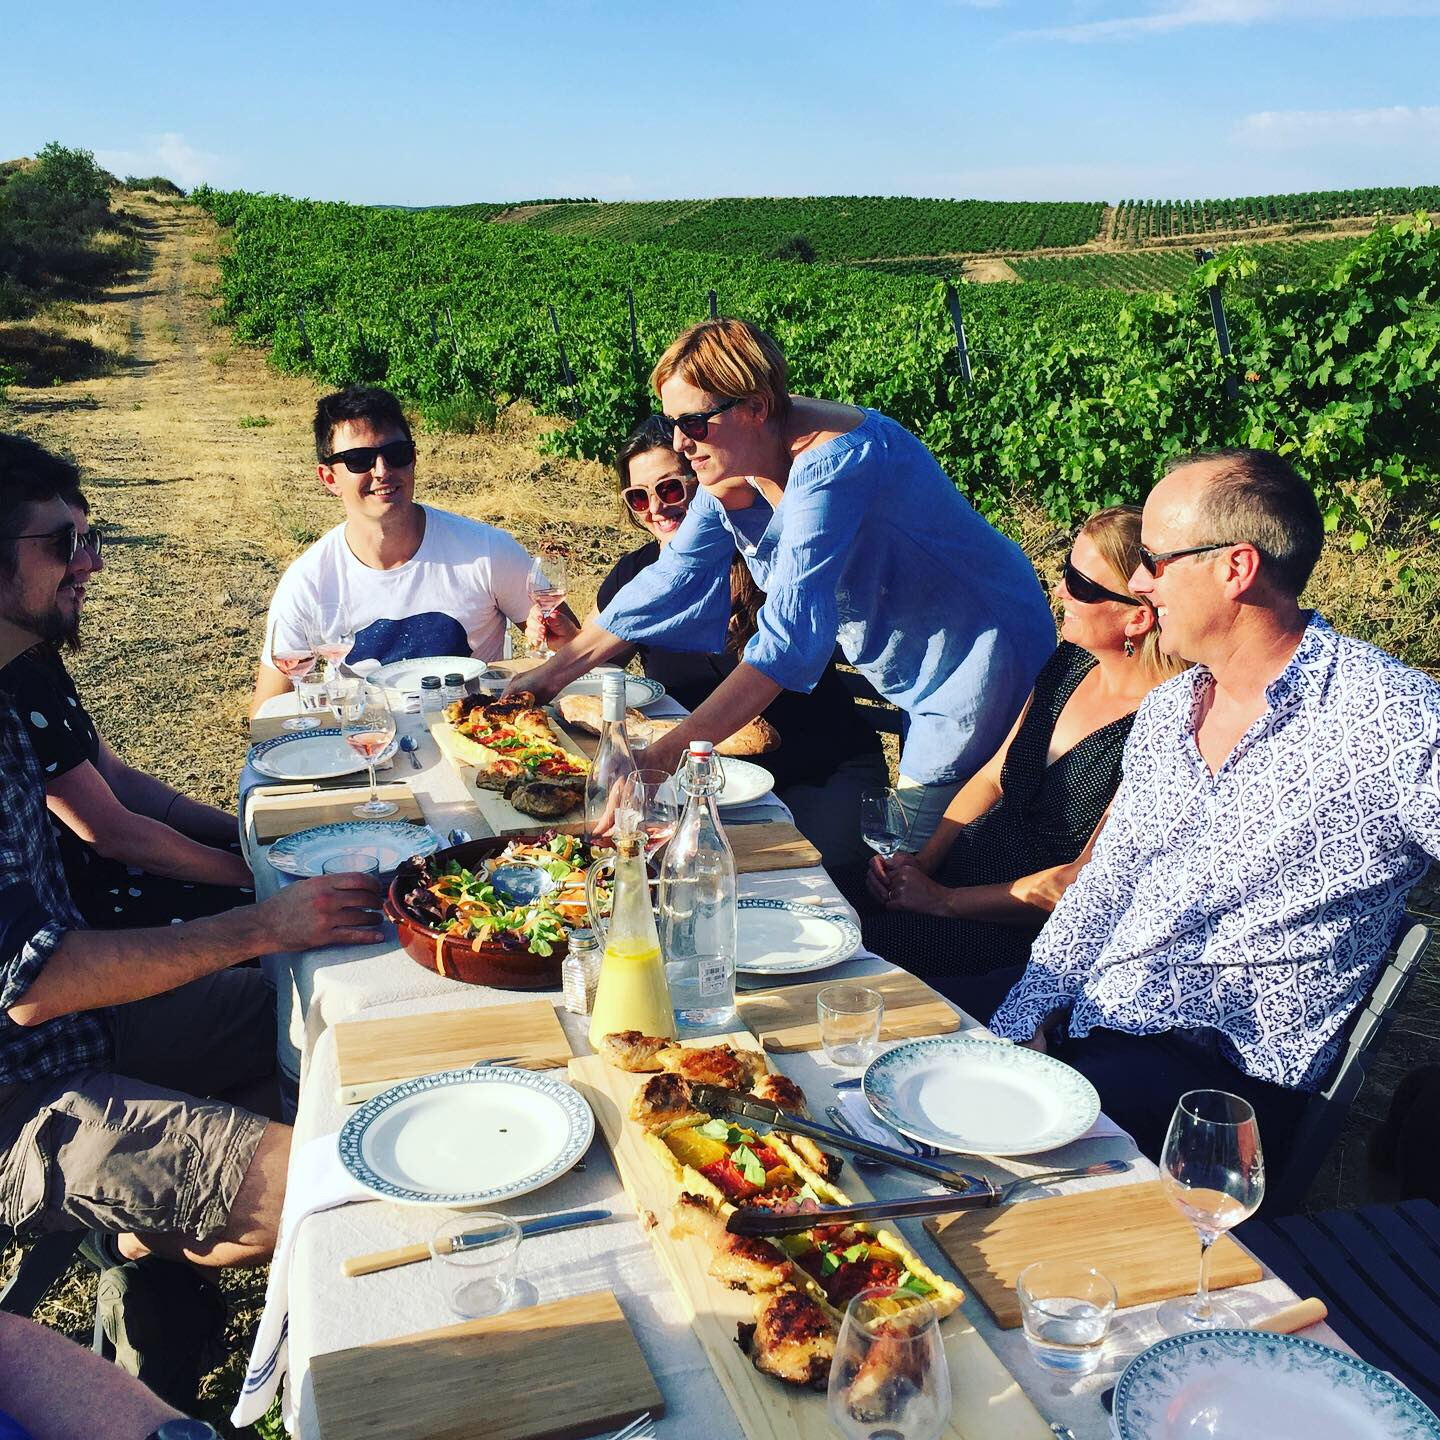 chic picnic at a table in the vineyards